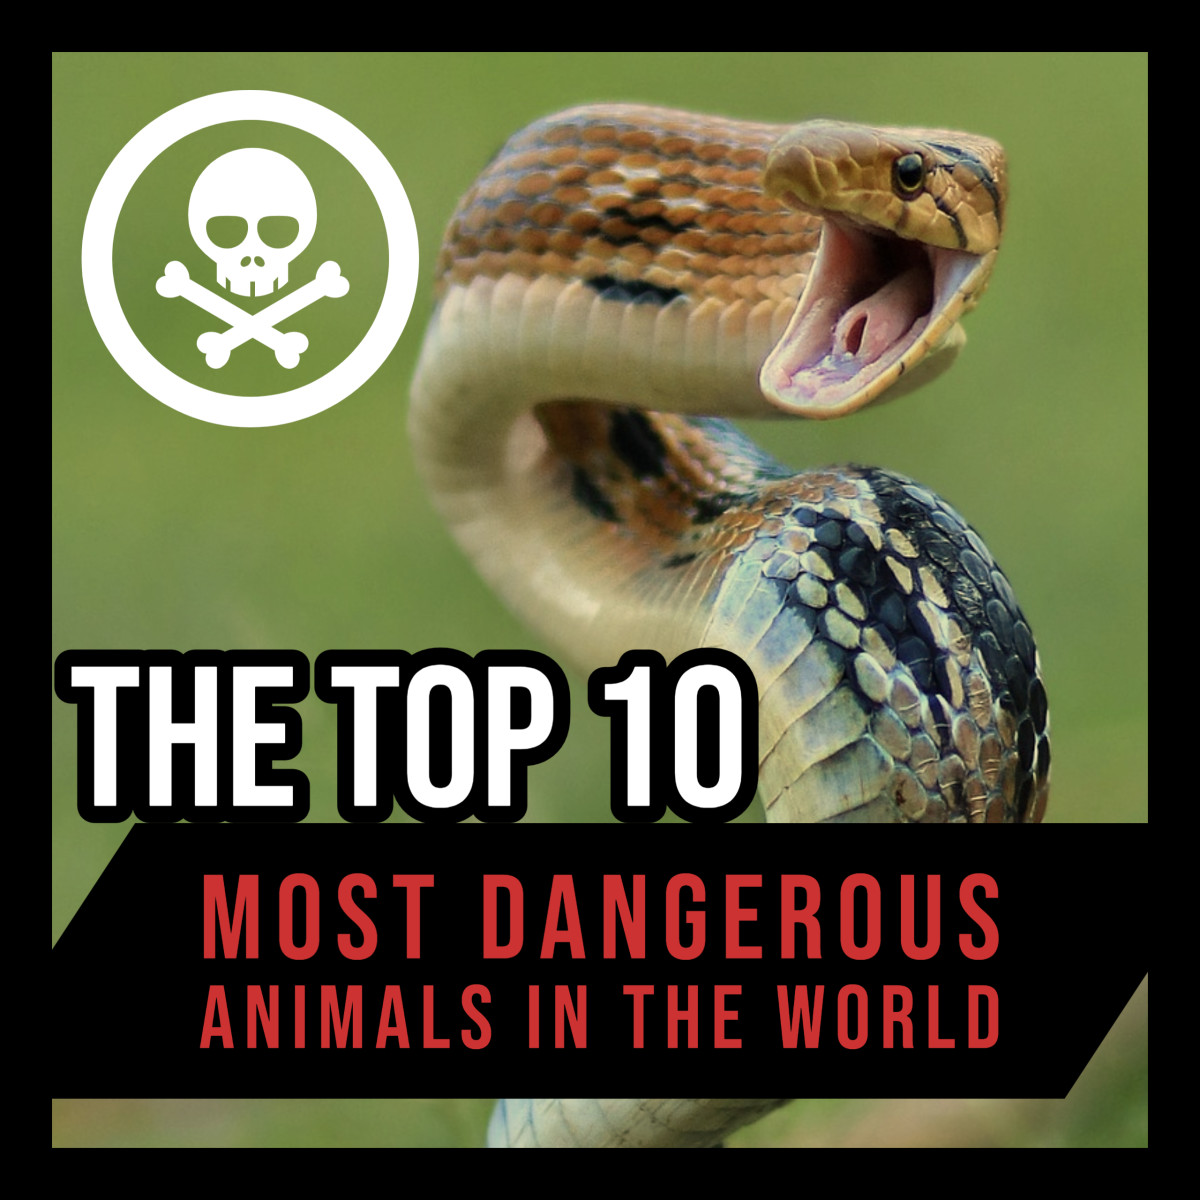 The Top 10 Most Dangerous Animals in the World.